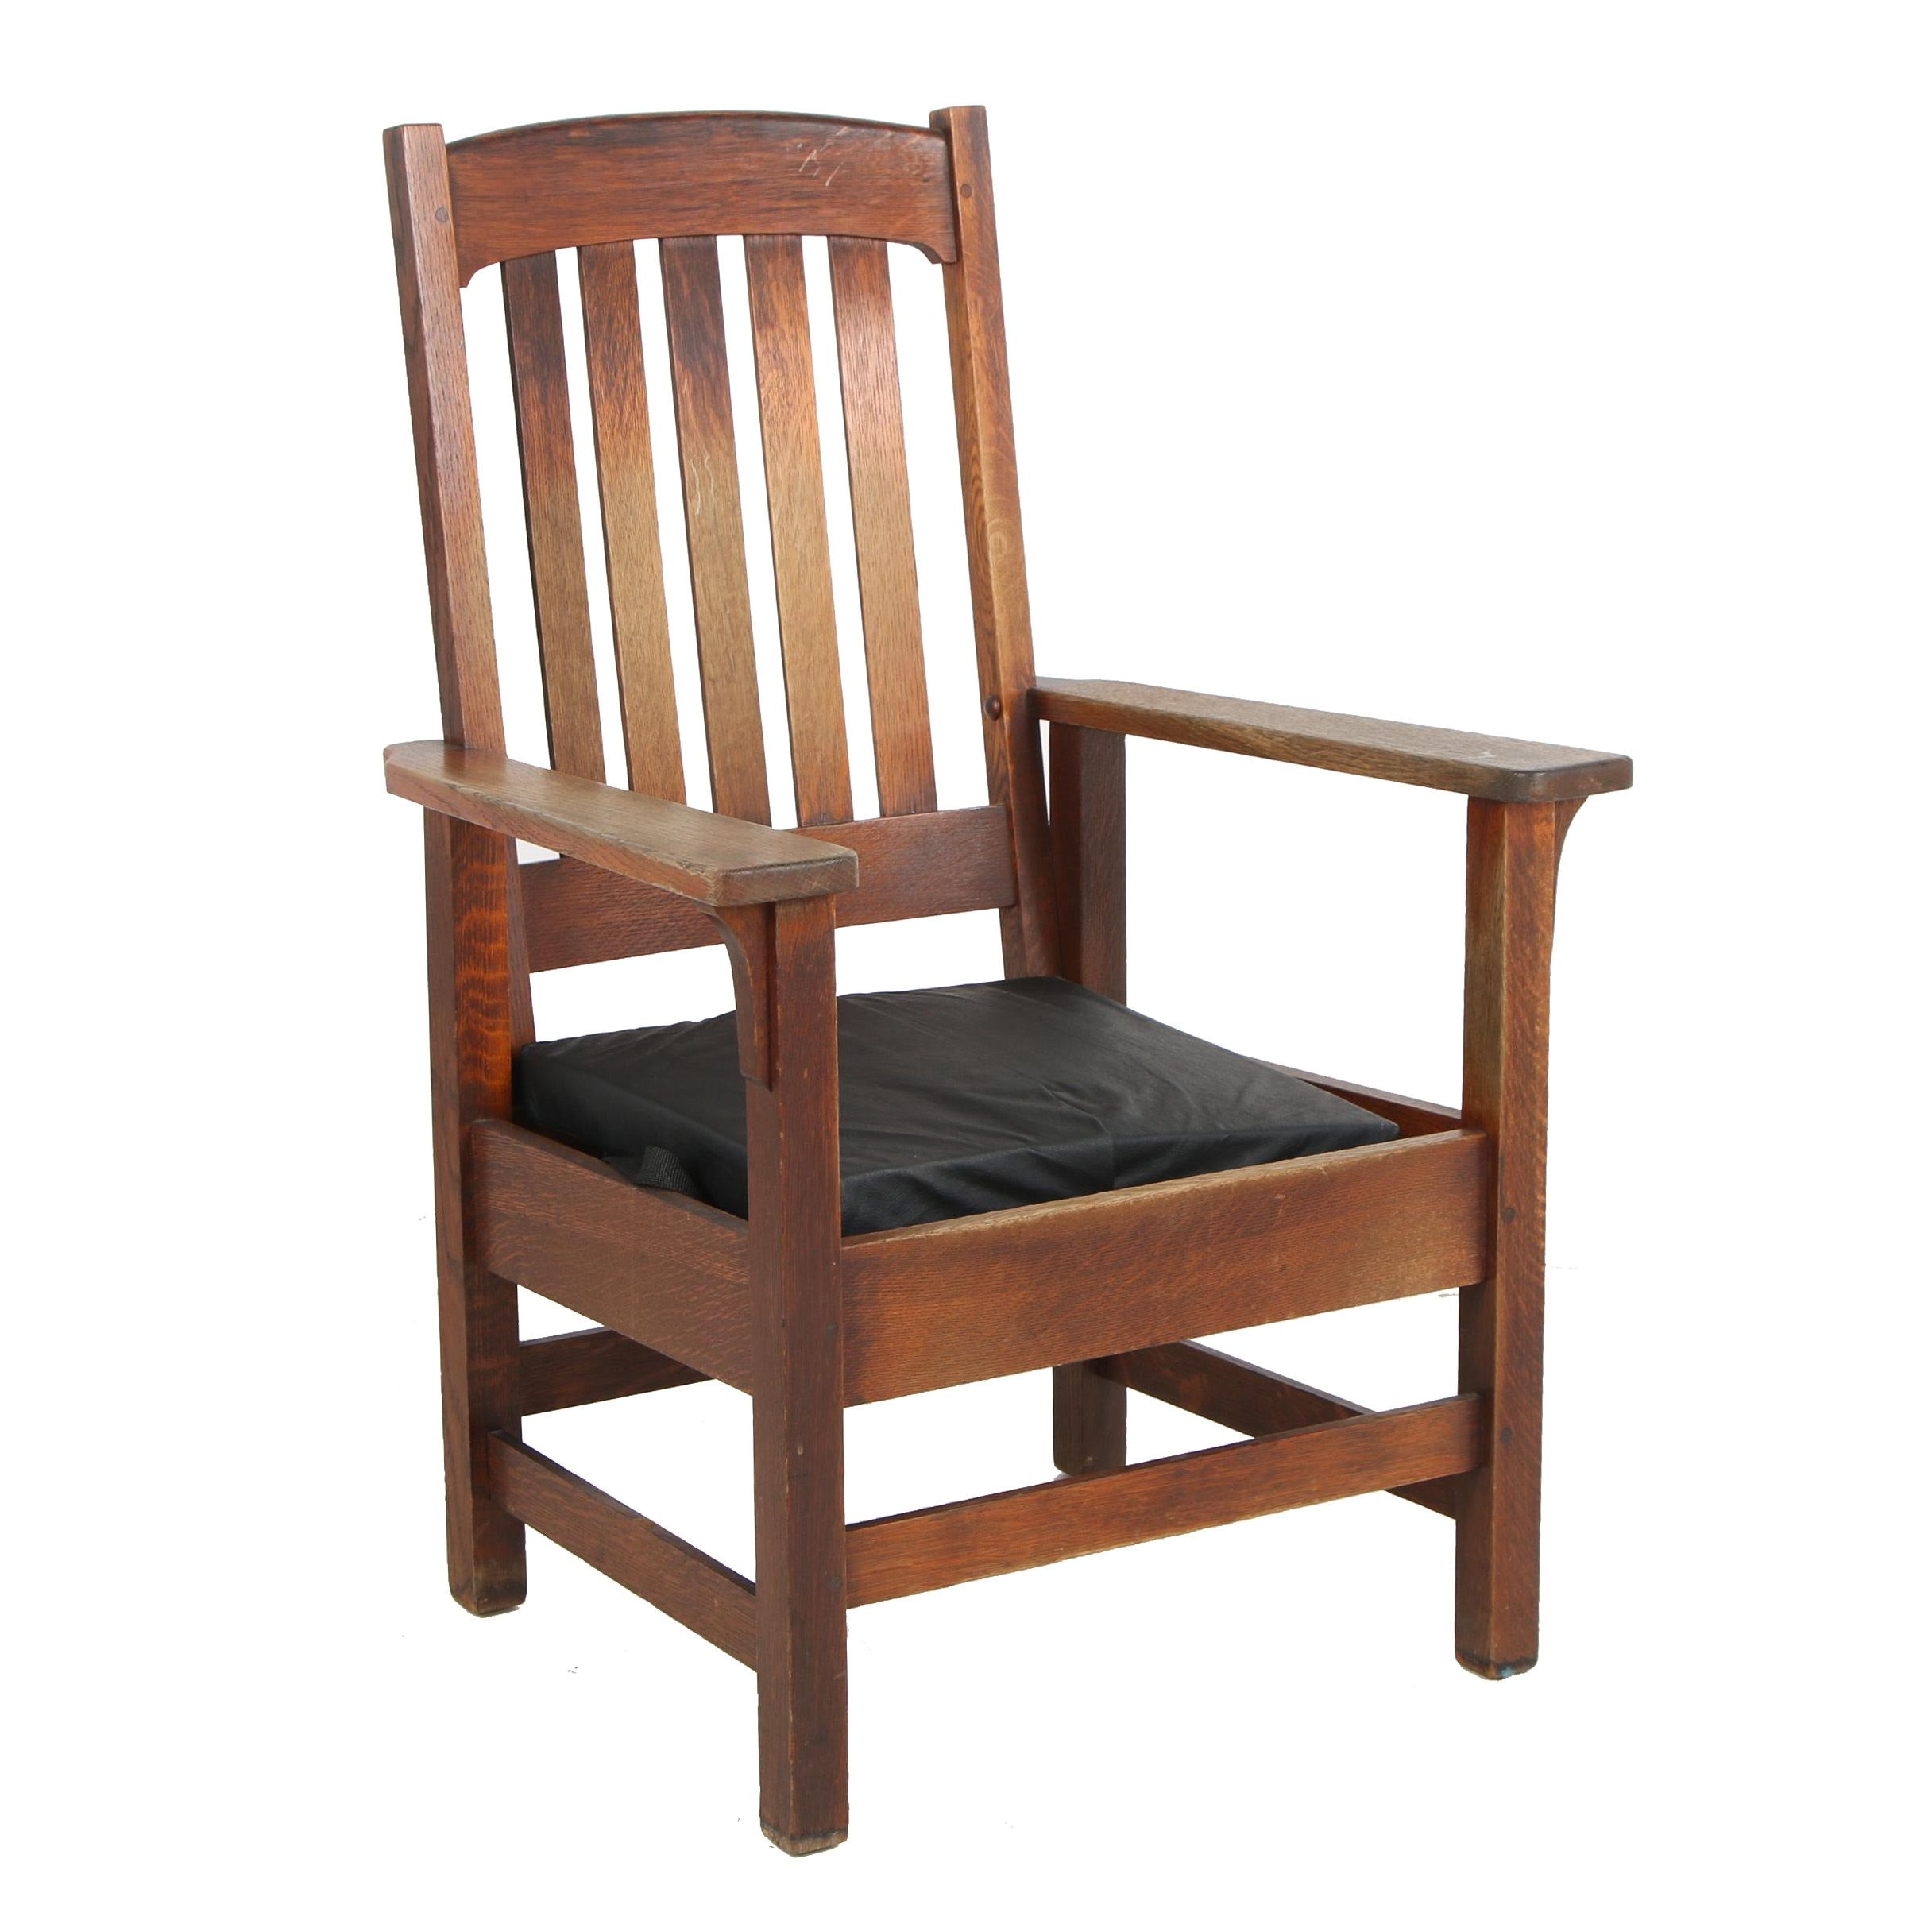 Wooden Arts and Crafts Style Slat Back Armchair